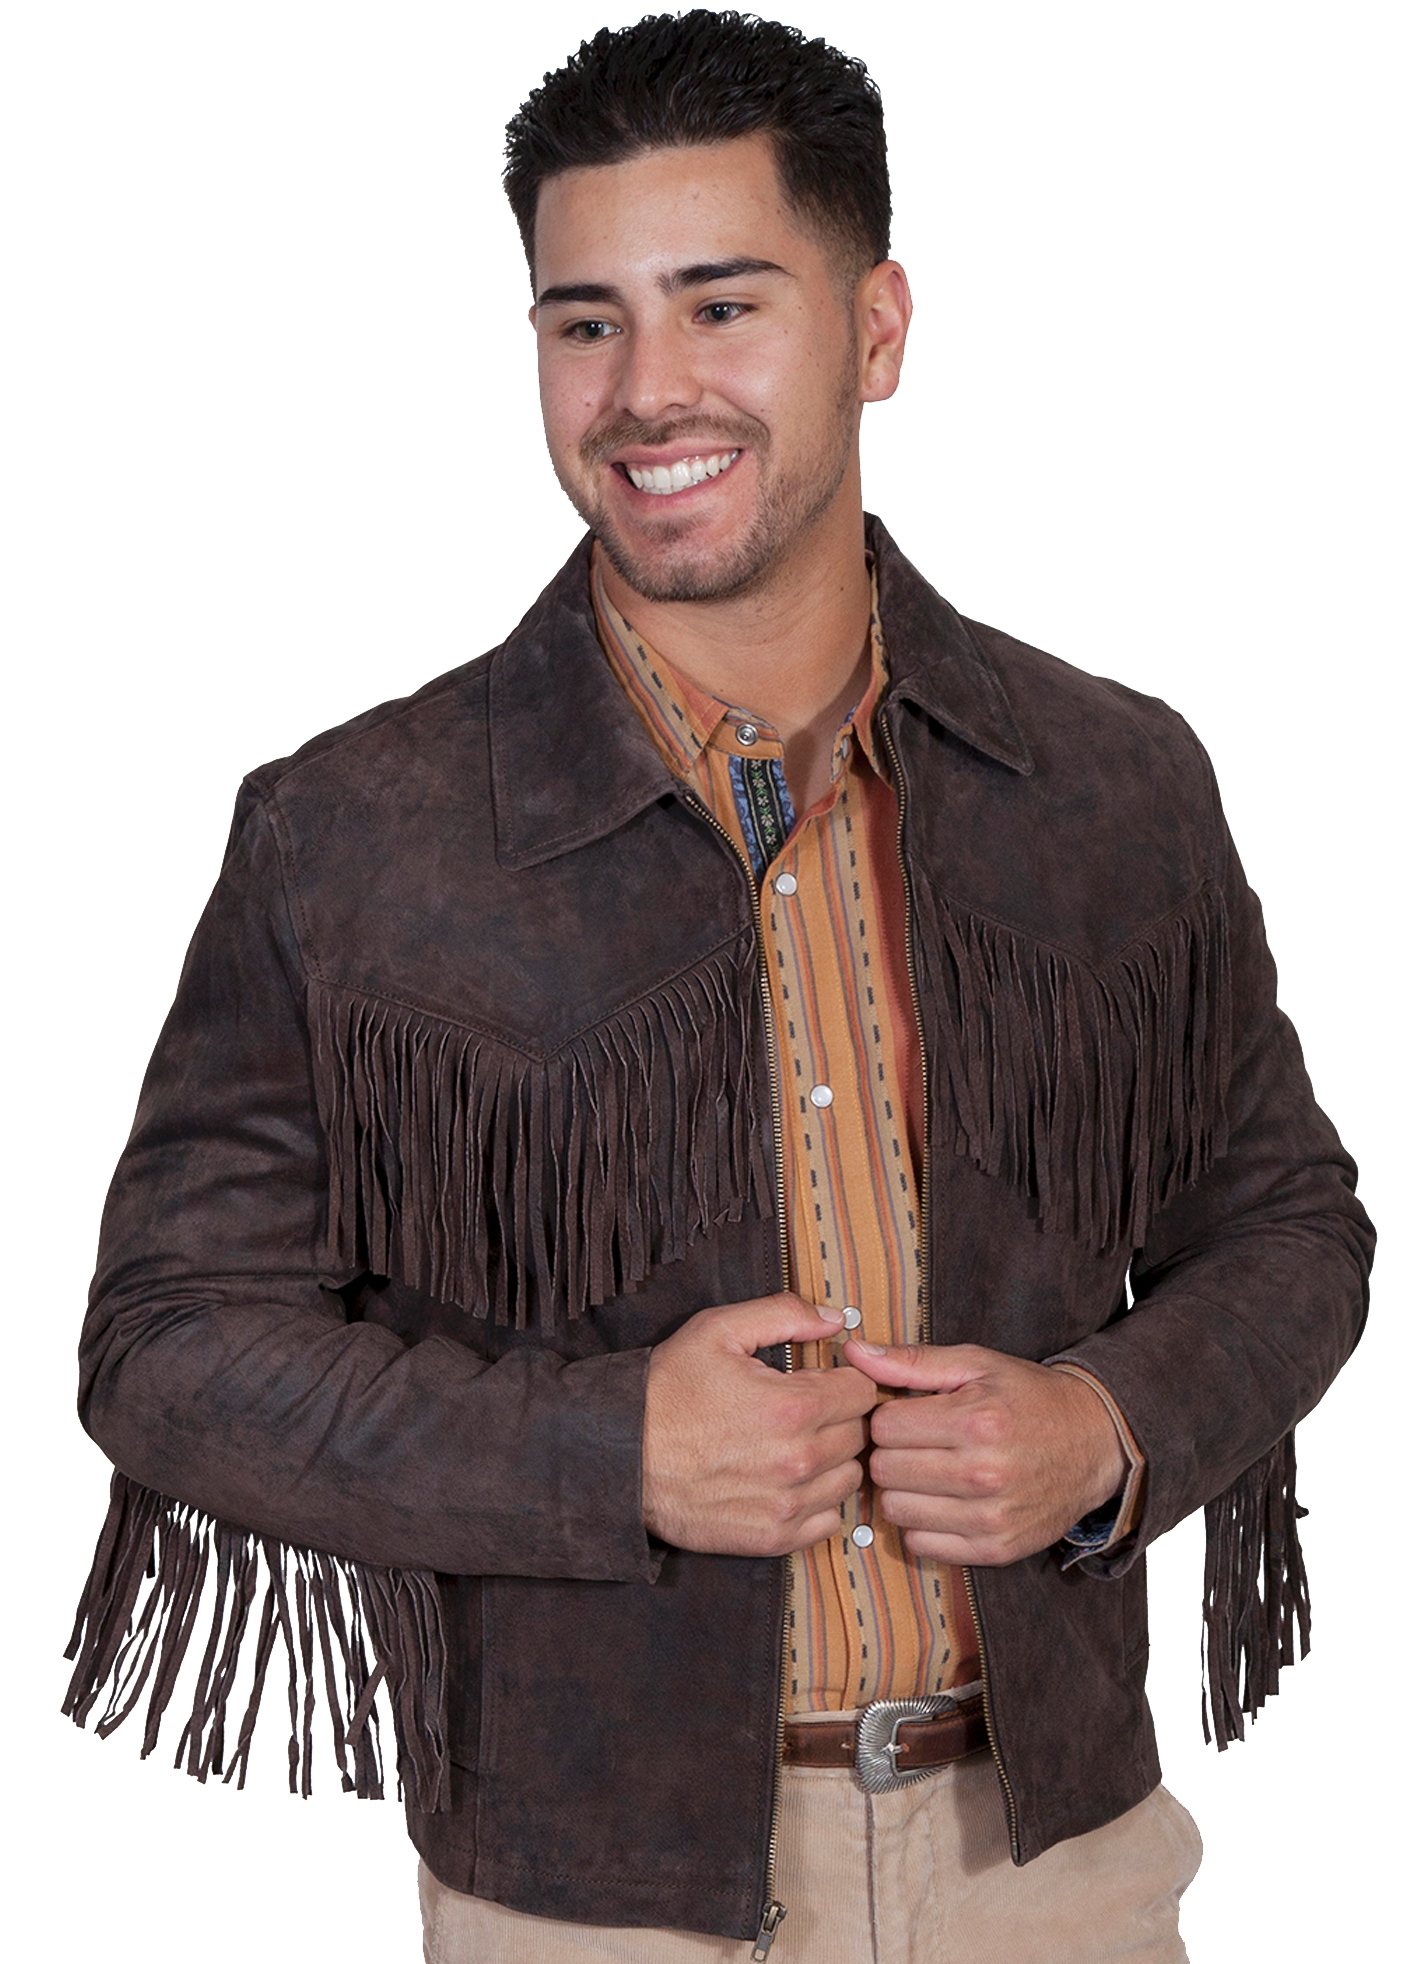 mens scully jacket, mens fringe western jacket, western fringe jacket for men, suede fringe jacket, scully fringe jacket, Mens Scully fringe jacket, scully mens fringe western jacket, fringe jacket